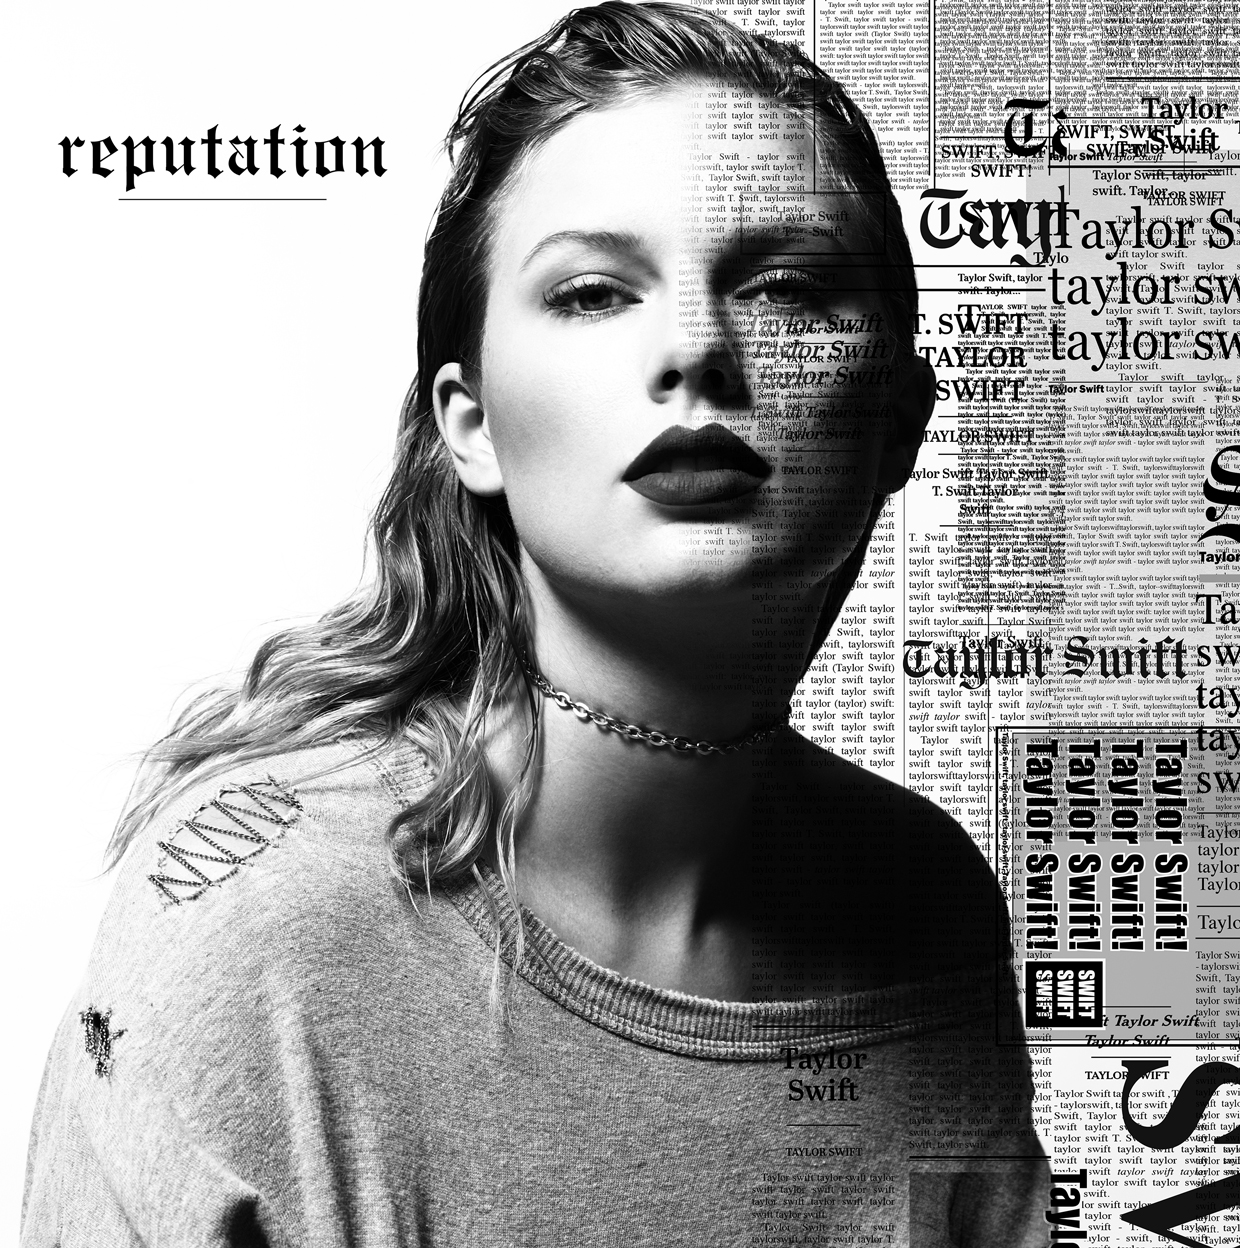 Taylor Swift's 'reputation' album available on all streaming platforms